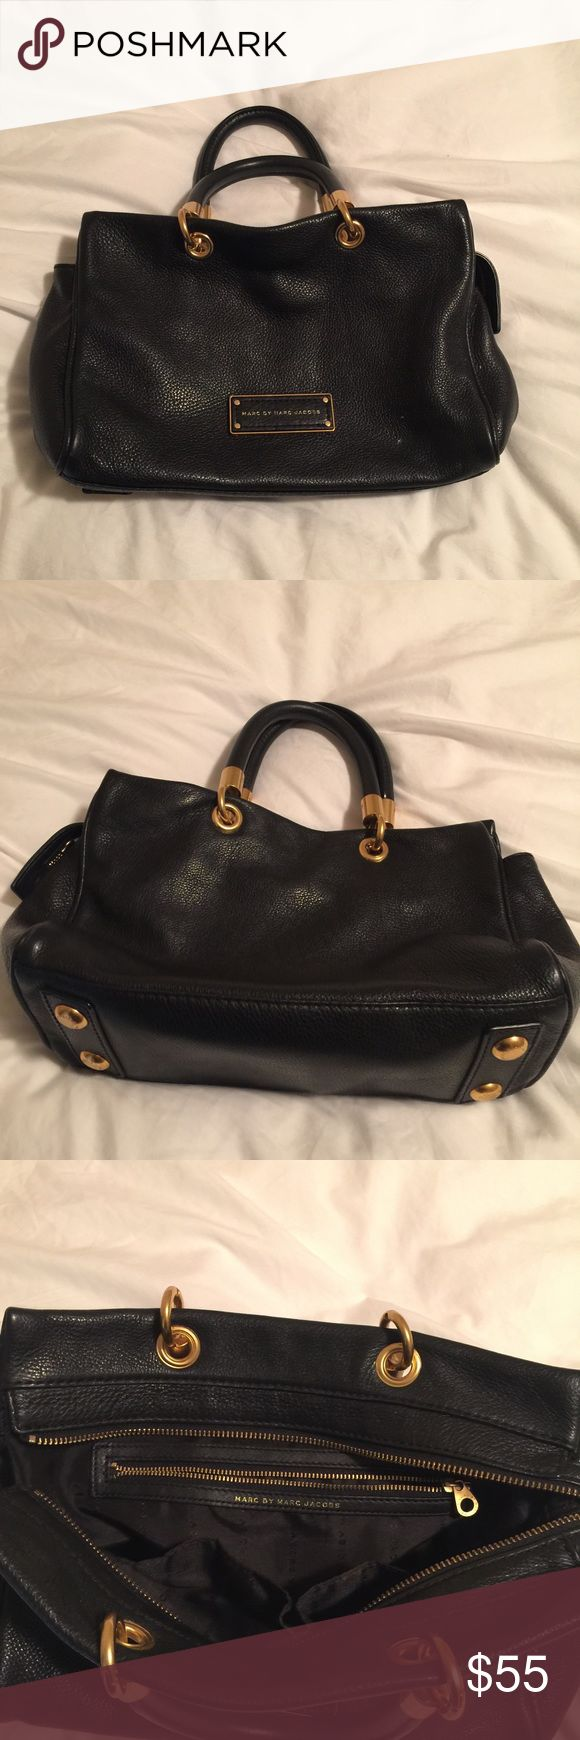 Marc by Marc Jacobs handbag Great condition Marc by Marc jacobs top handle purse Marc by Marc Jacobs Bags Totes